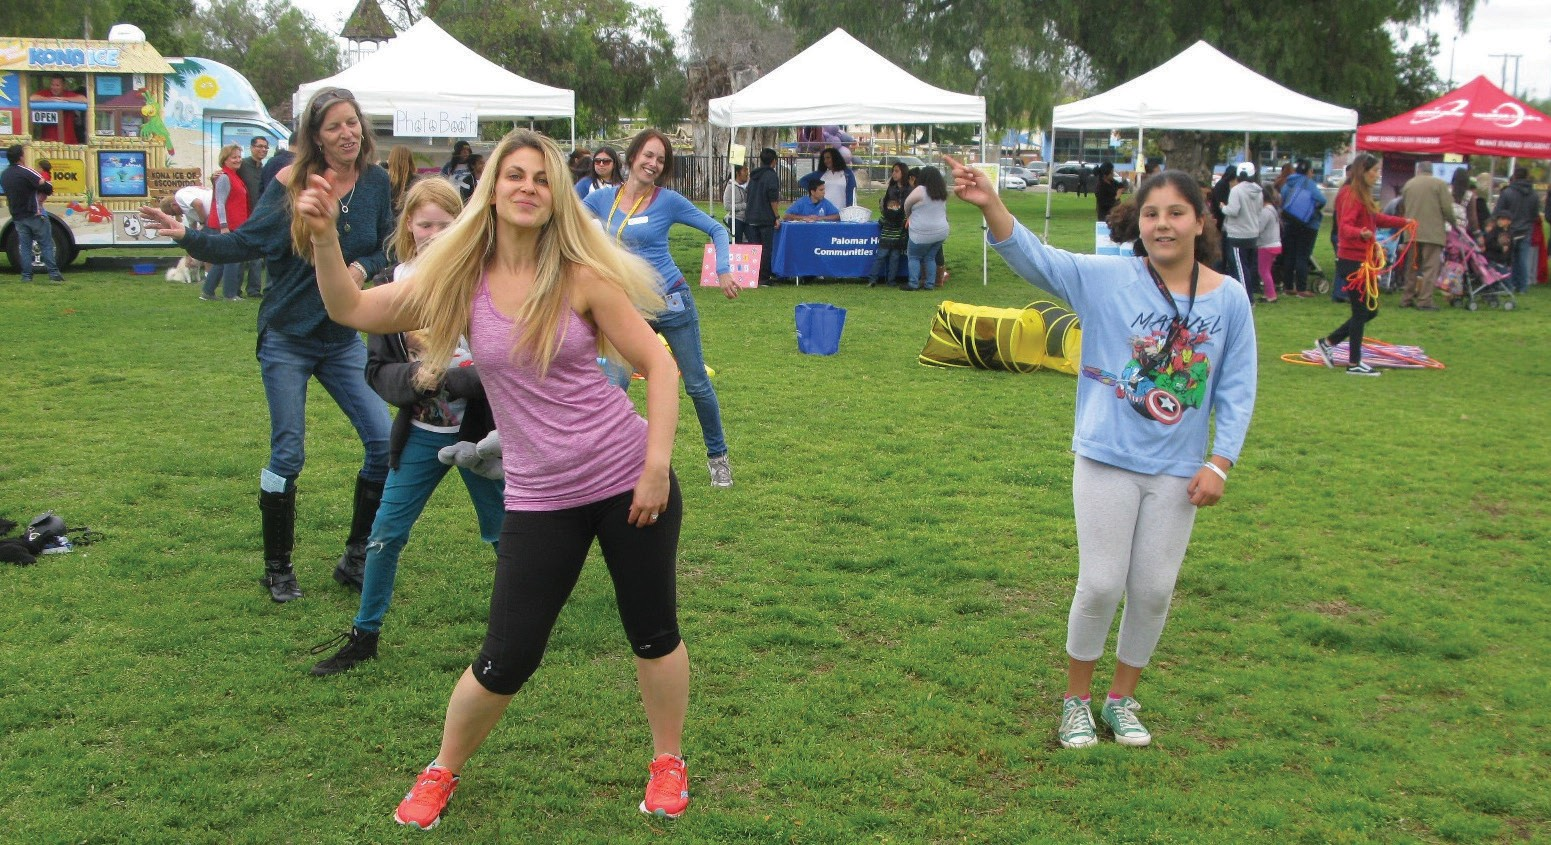 Jamie Cassutt-Sanchez leads Kimberly Israel, EUSD's outreach coordinator (behind, left) and all comers in Kids Yoga at the school district's Peace Begins with ME event last Saturday in Grape Day Park.